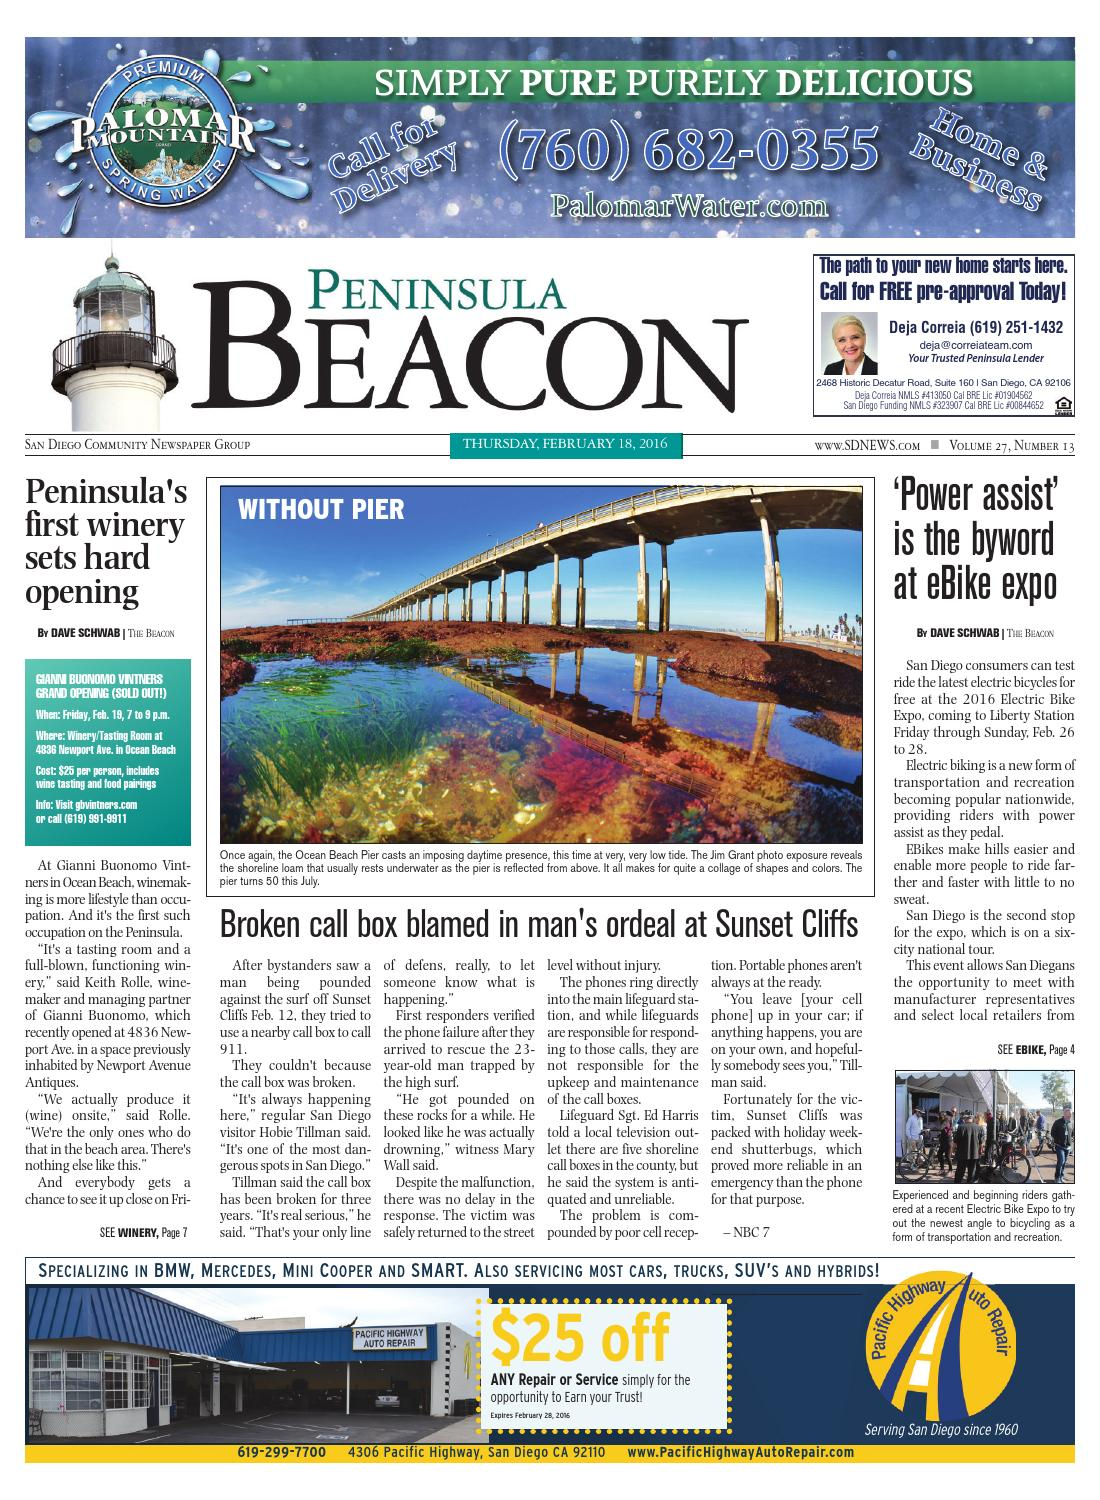 The Peninsula Beacon February 18th 2016 By San Diego